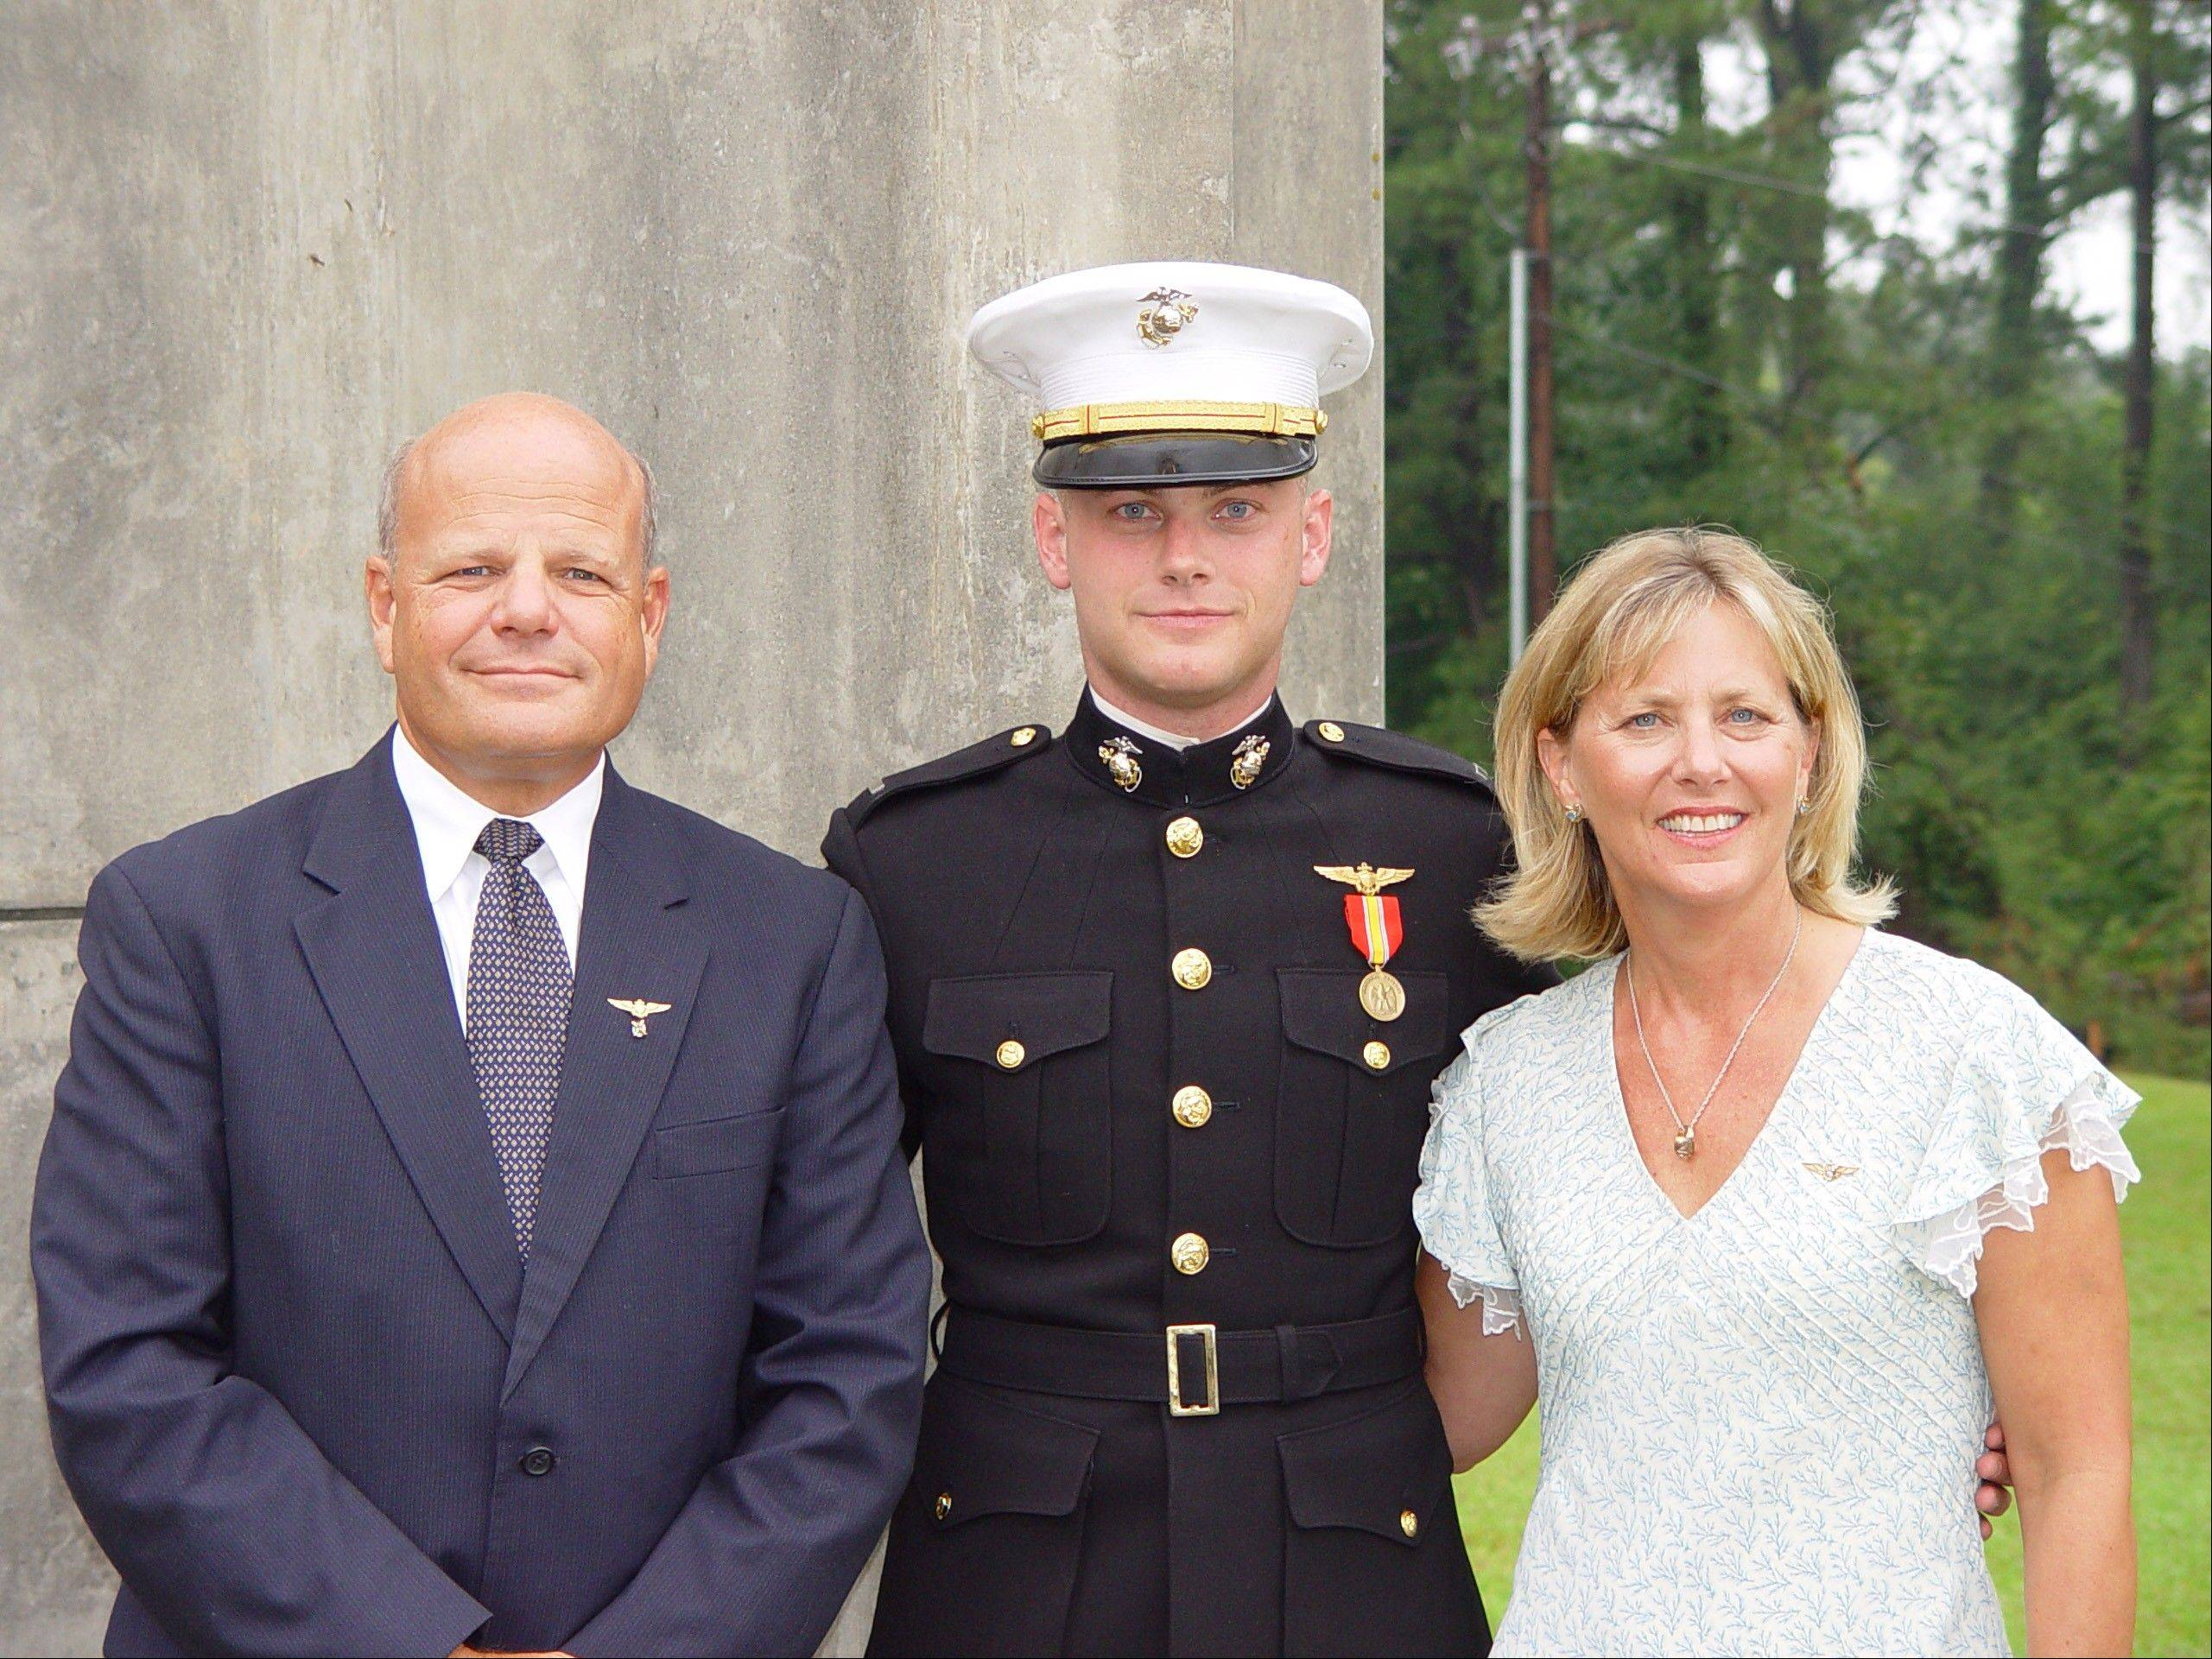 Lisa Freeman and her husband, Gary, and her son, Matthew, and in Meridian, Miss. where Matthew finished his jet training. Matthew Freeman excelled at everything he set his mind to. Eagle Scout, honor roll, student council president. So no one was surprised when he won an appointment to the U.S. Naval Academy, following in his father�s footsteps.